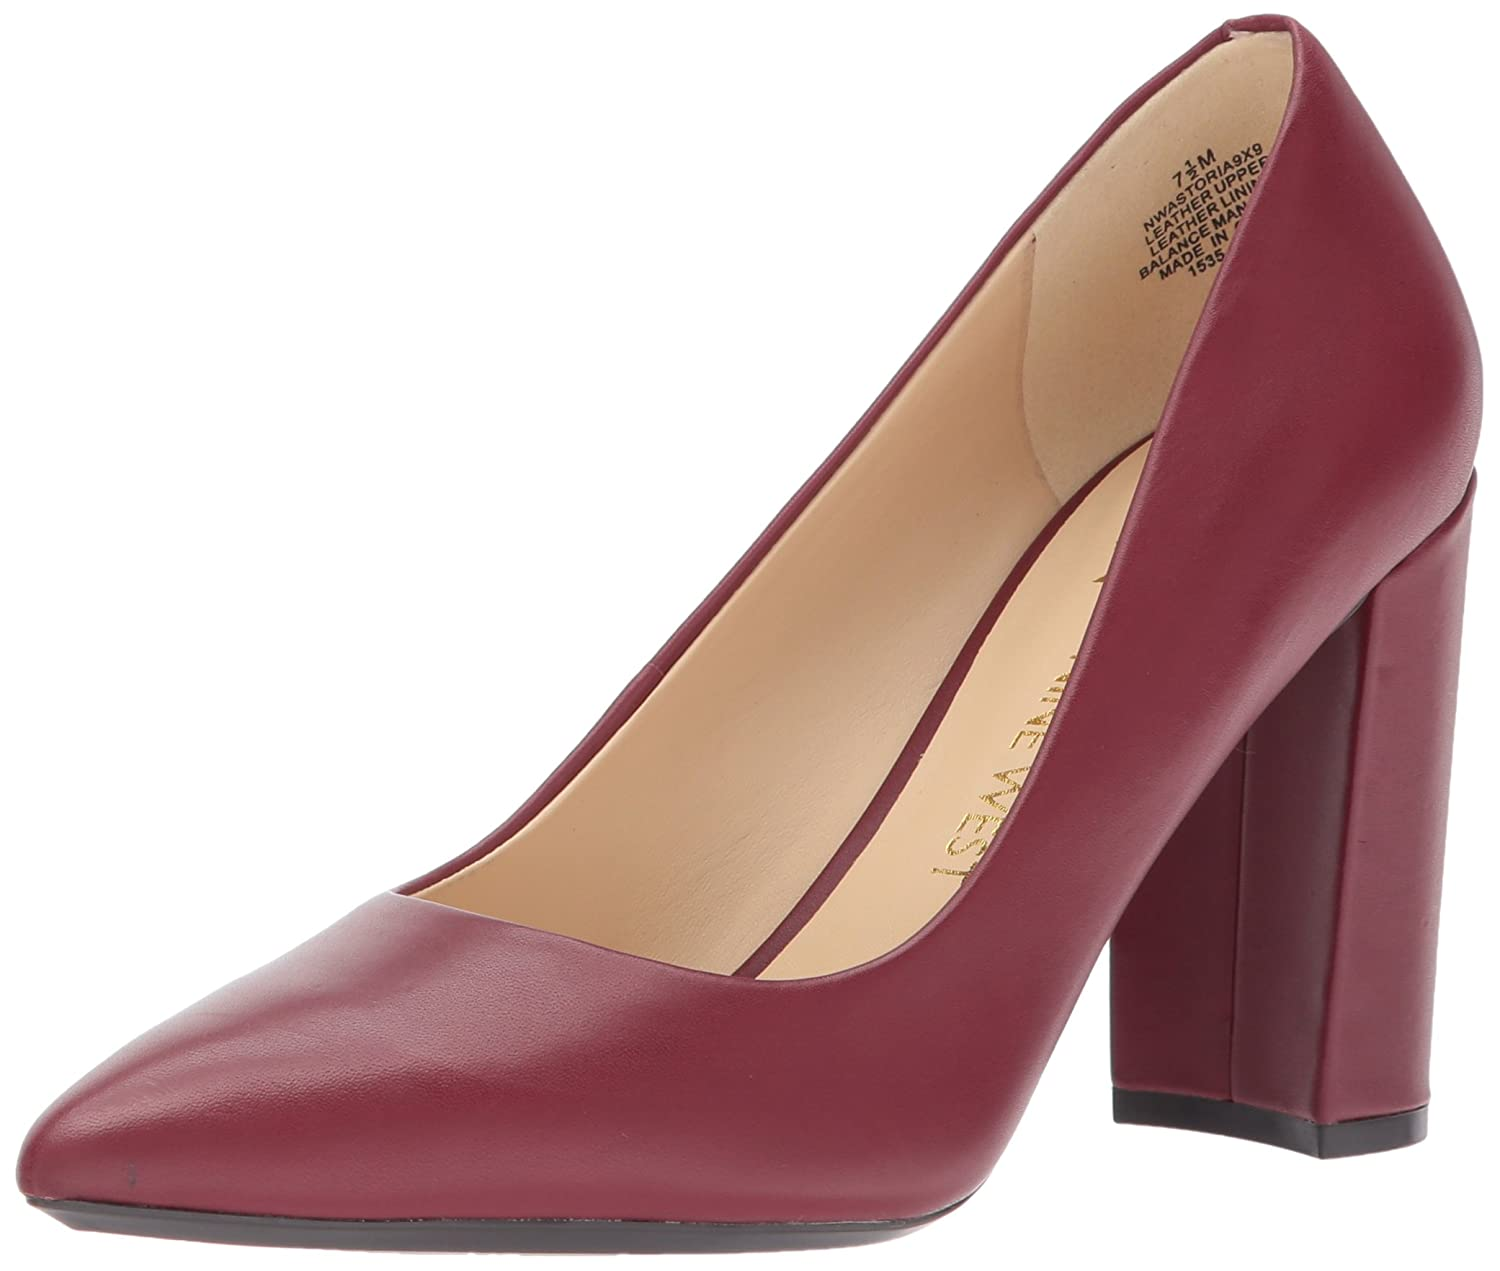 Nine West Women's Astoria Pump B06WP55RFW 6.5 B(M) US|Wine Leather